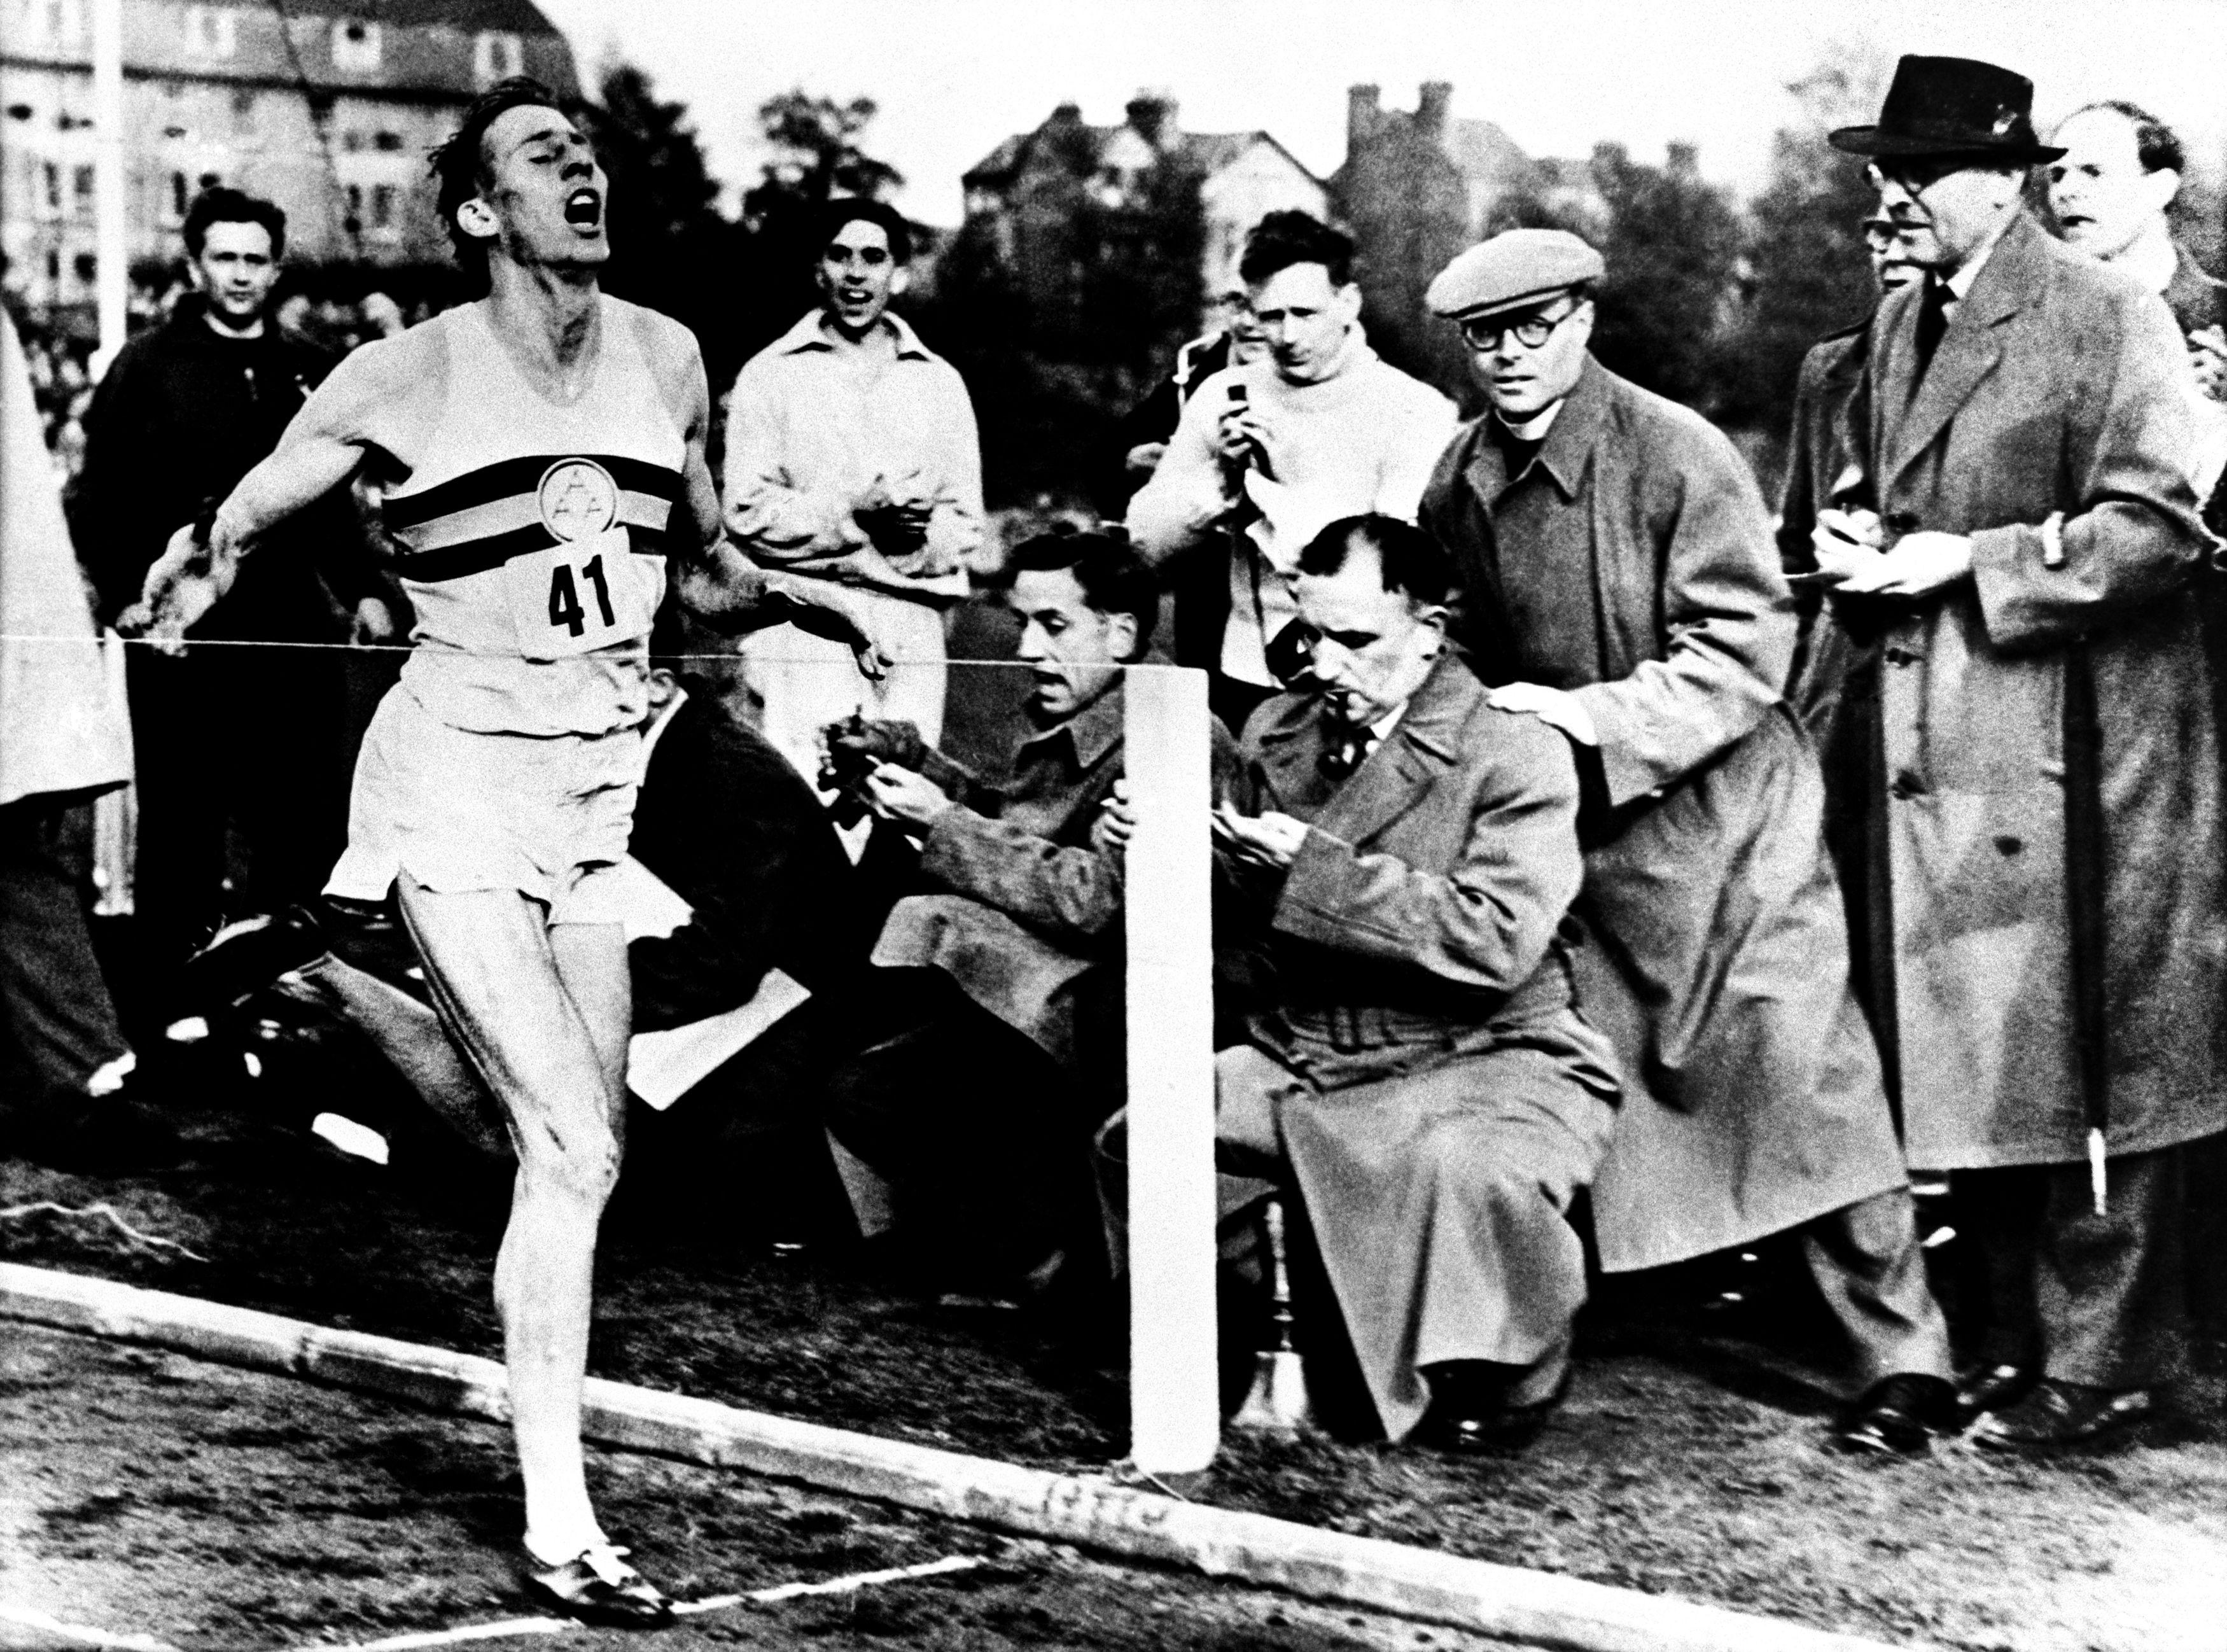 Roger Bannister hits the tape at the Oxford track where he completed a mile in under four minutes